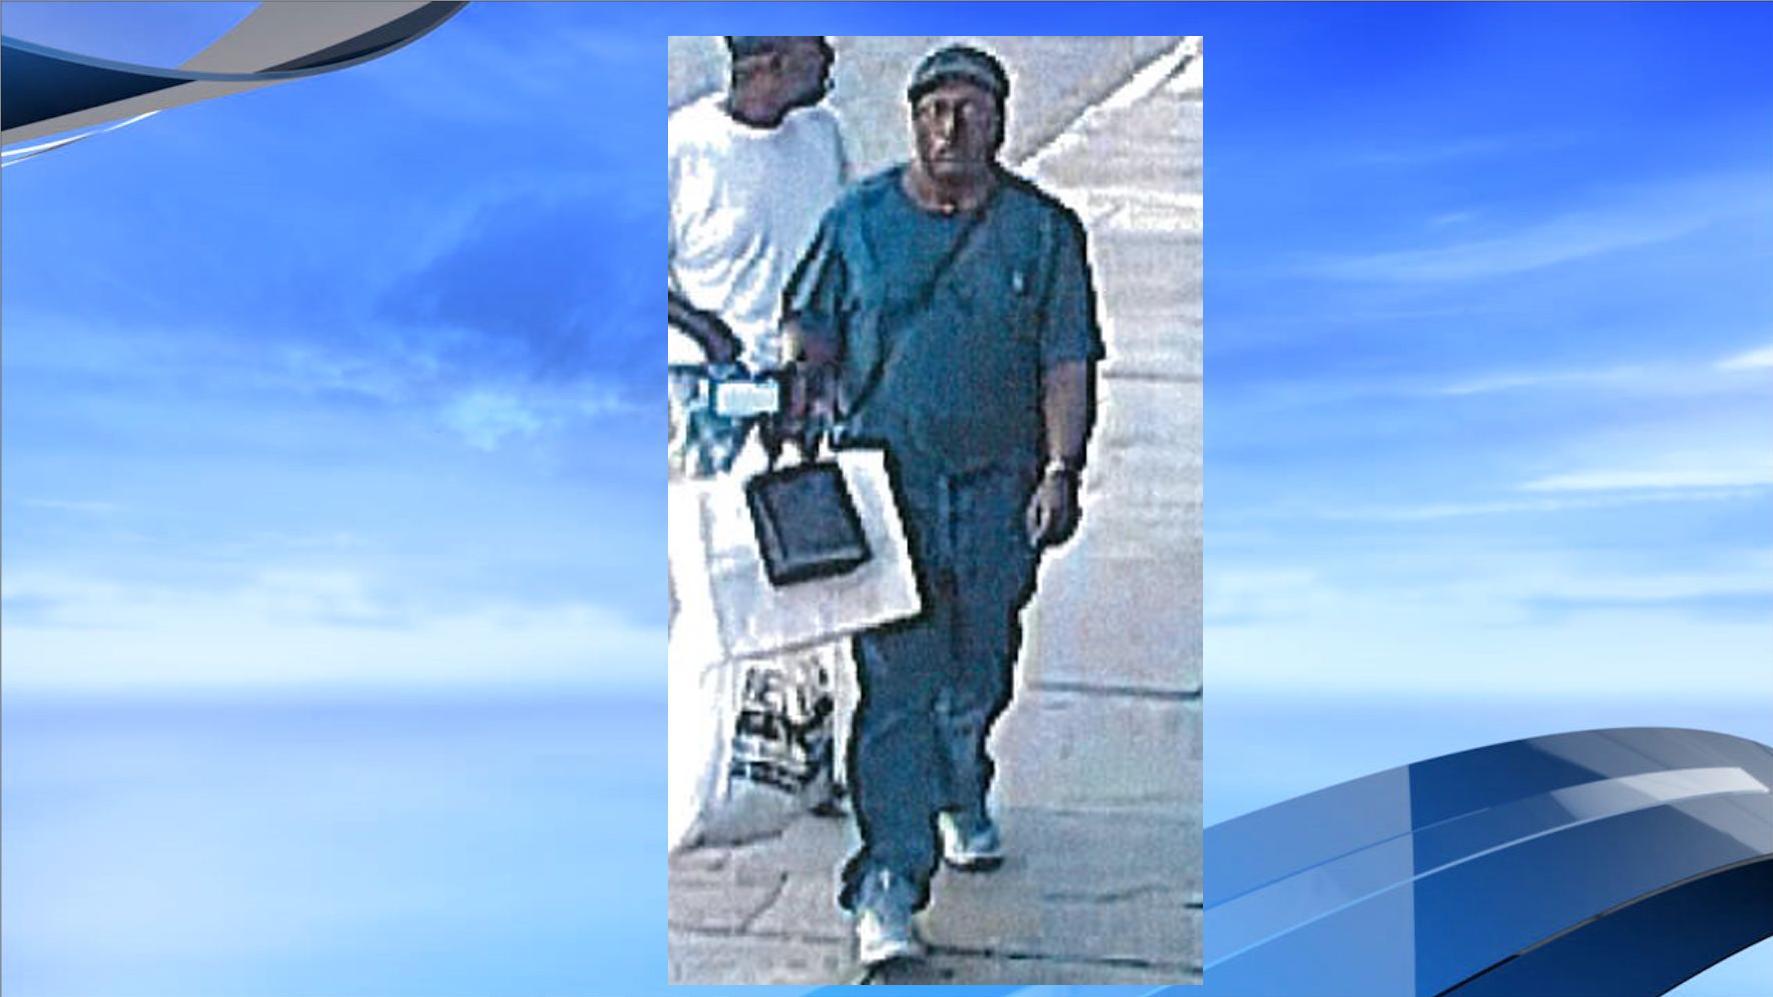 Suspects in a shoplifting incident on April 3. (City of Charleston Police Department)